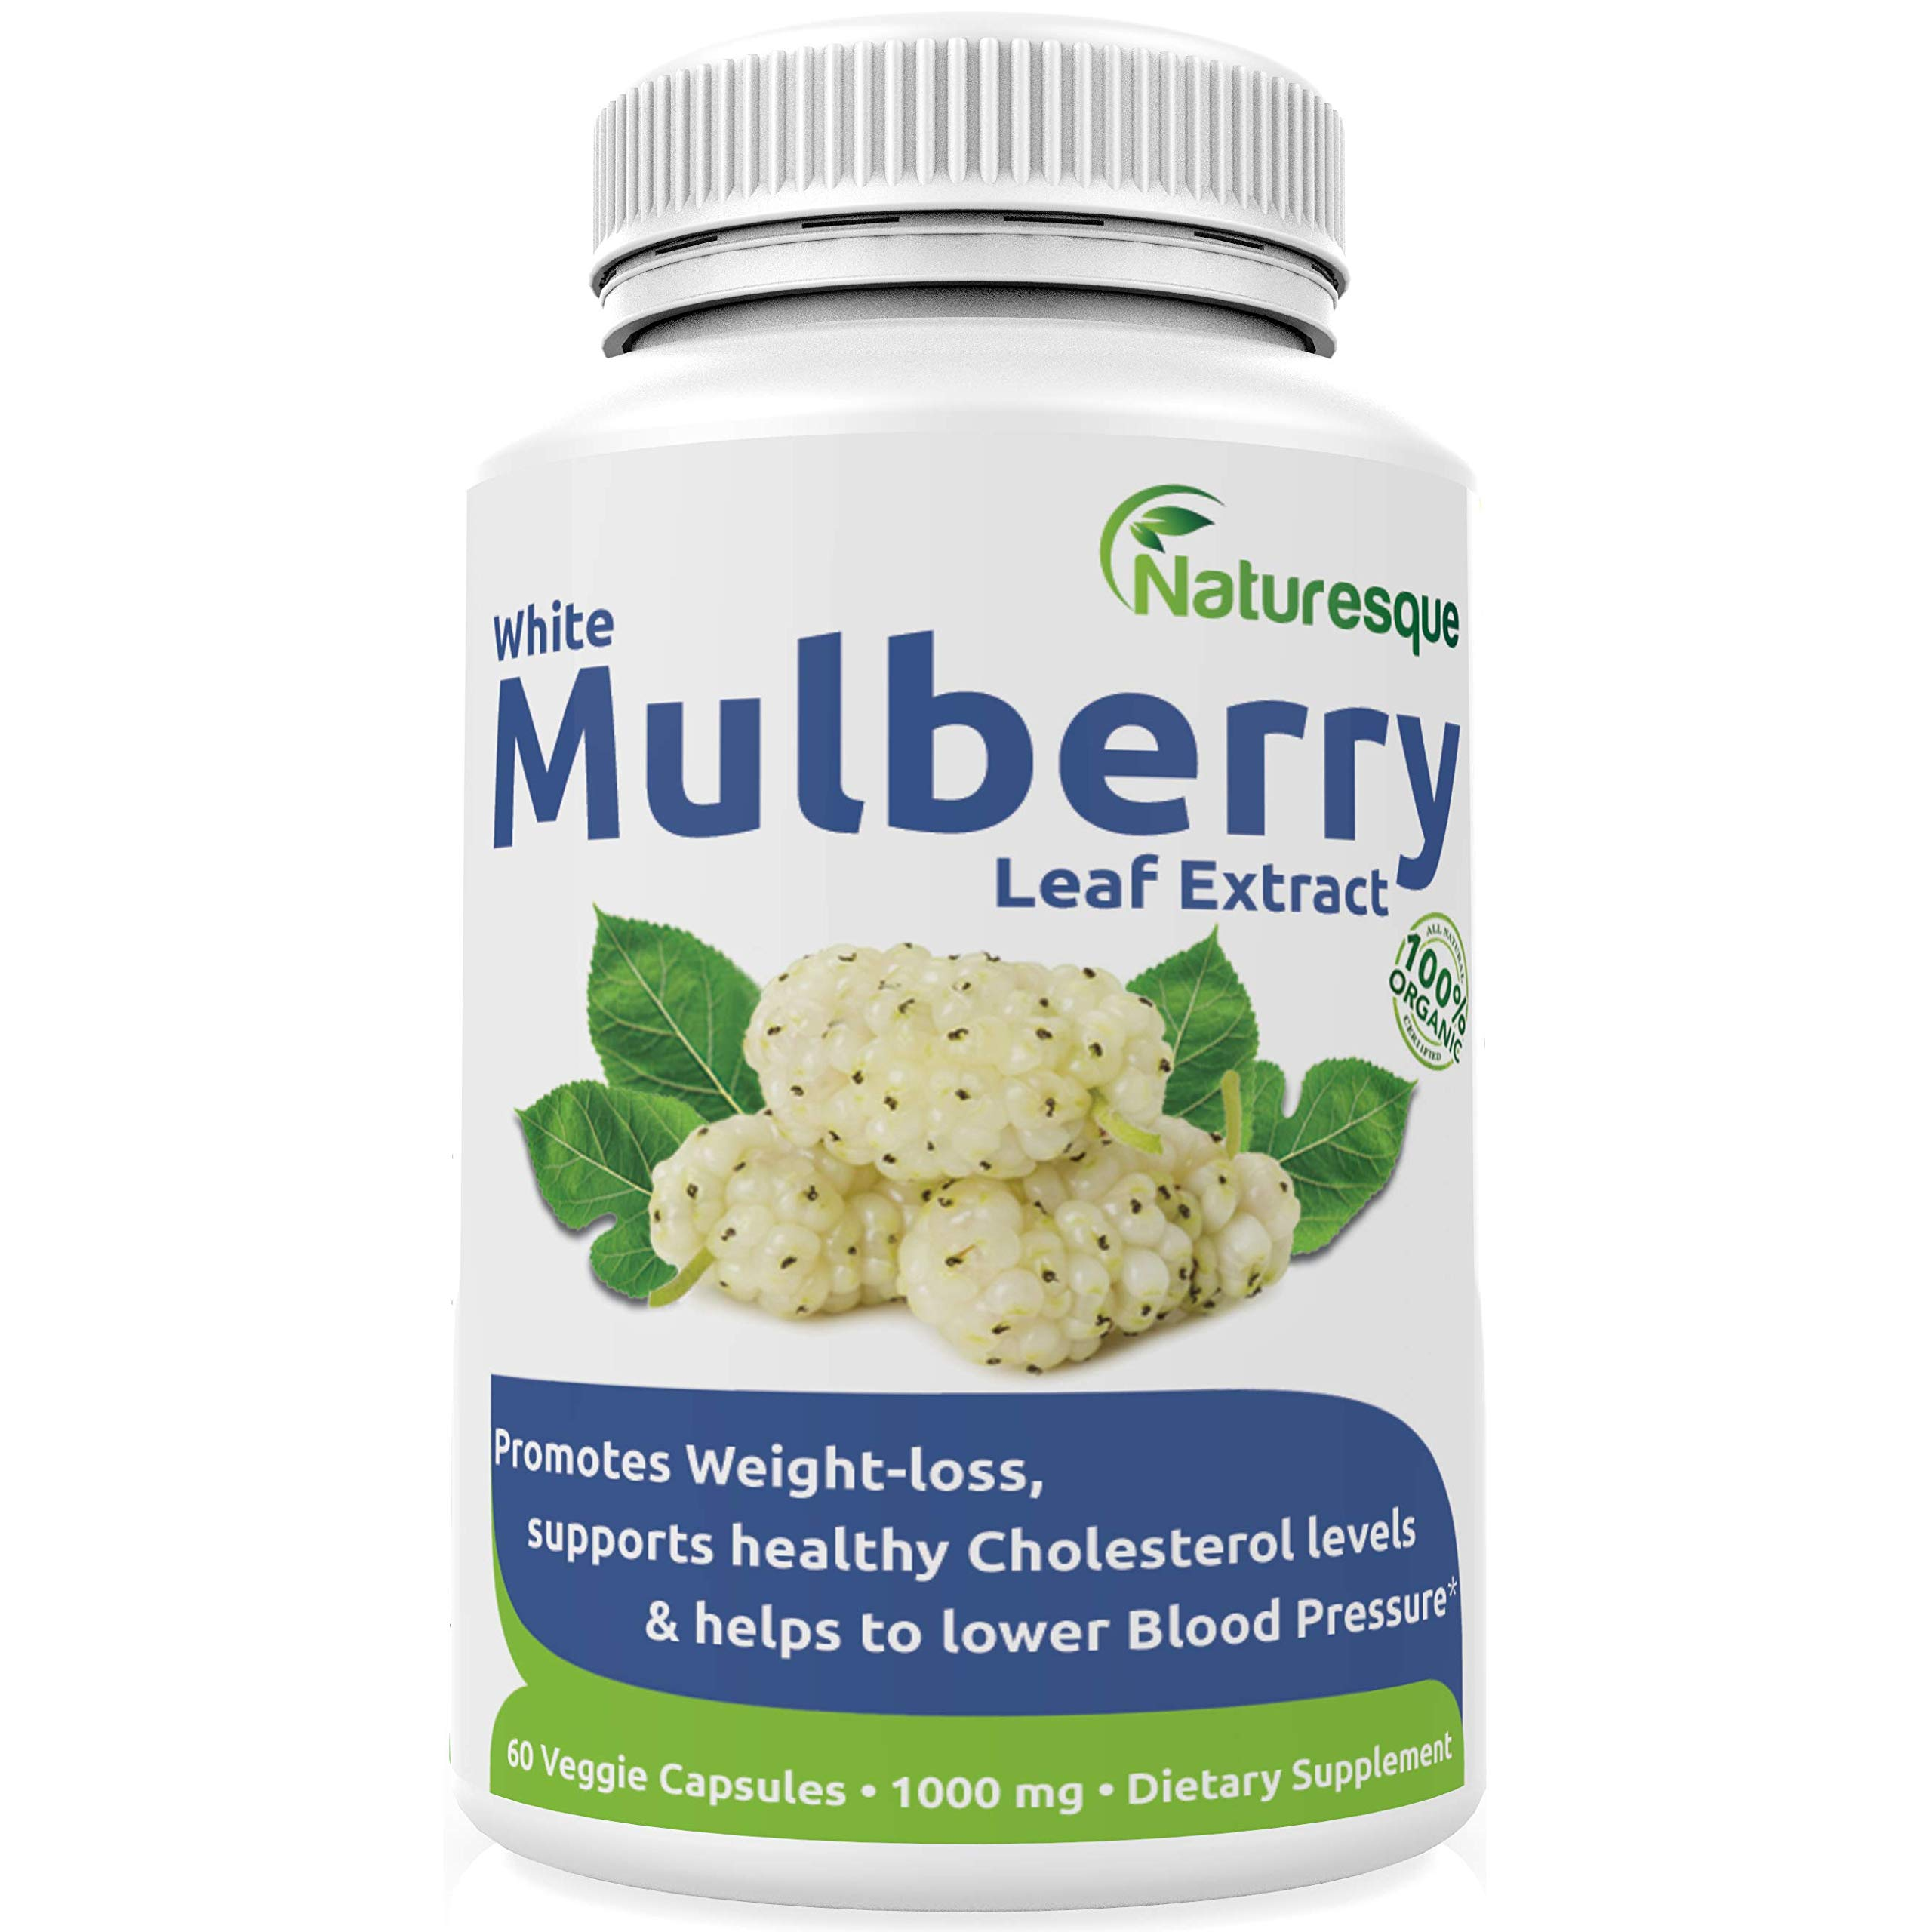 Naturesque White Mulberry Leaf Extract | Controls Appetite, Curbs Sugar & Carb Cravings | Helps Lower Blood Sugar Levels | Perfect for Zuccarin Diet Weight Loss | 1000mg 60 Vegan Capsules by Naturesque